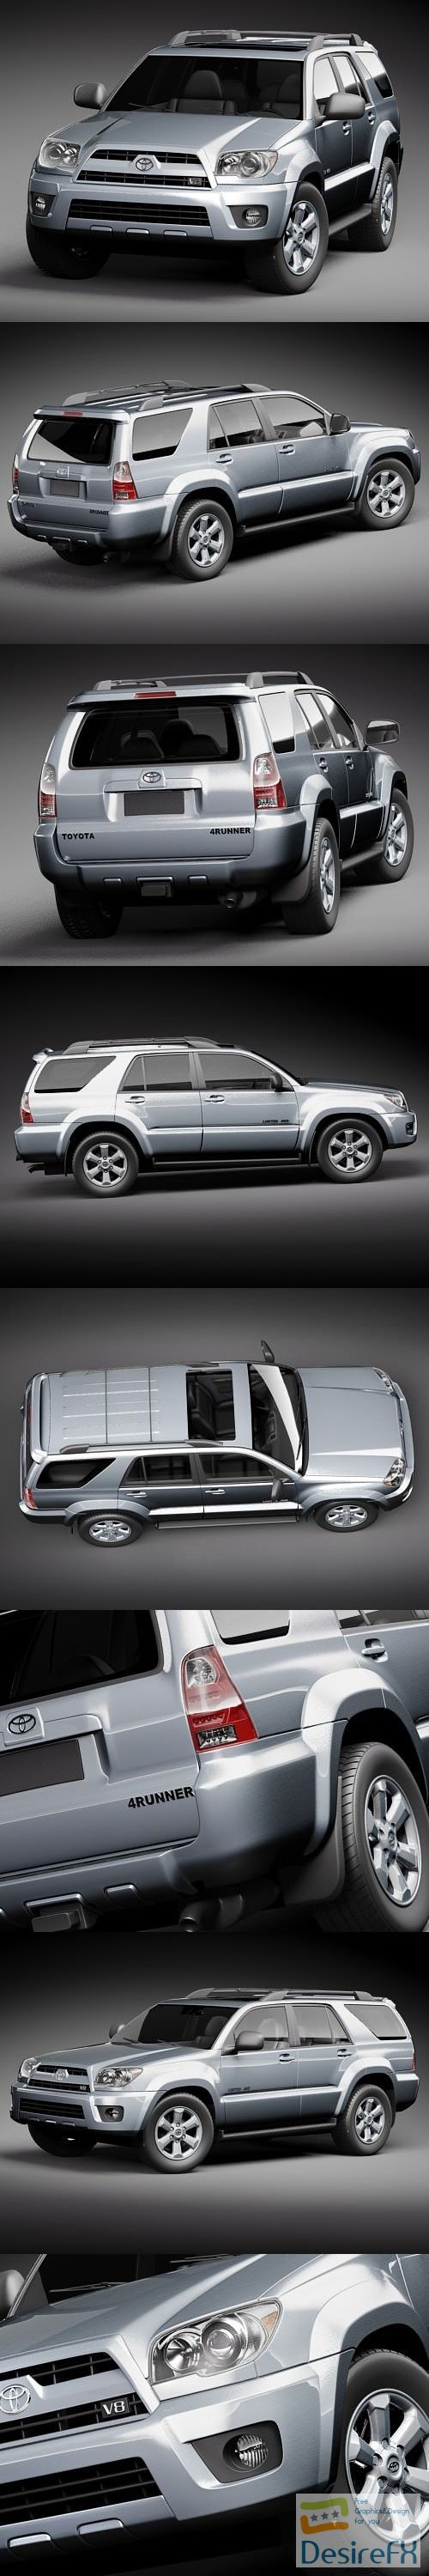 3d-models - Toyota 4runner 2009 3D Model